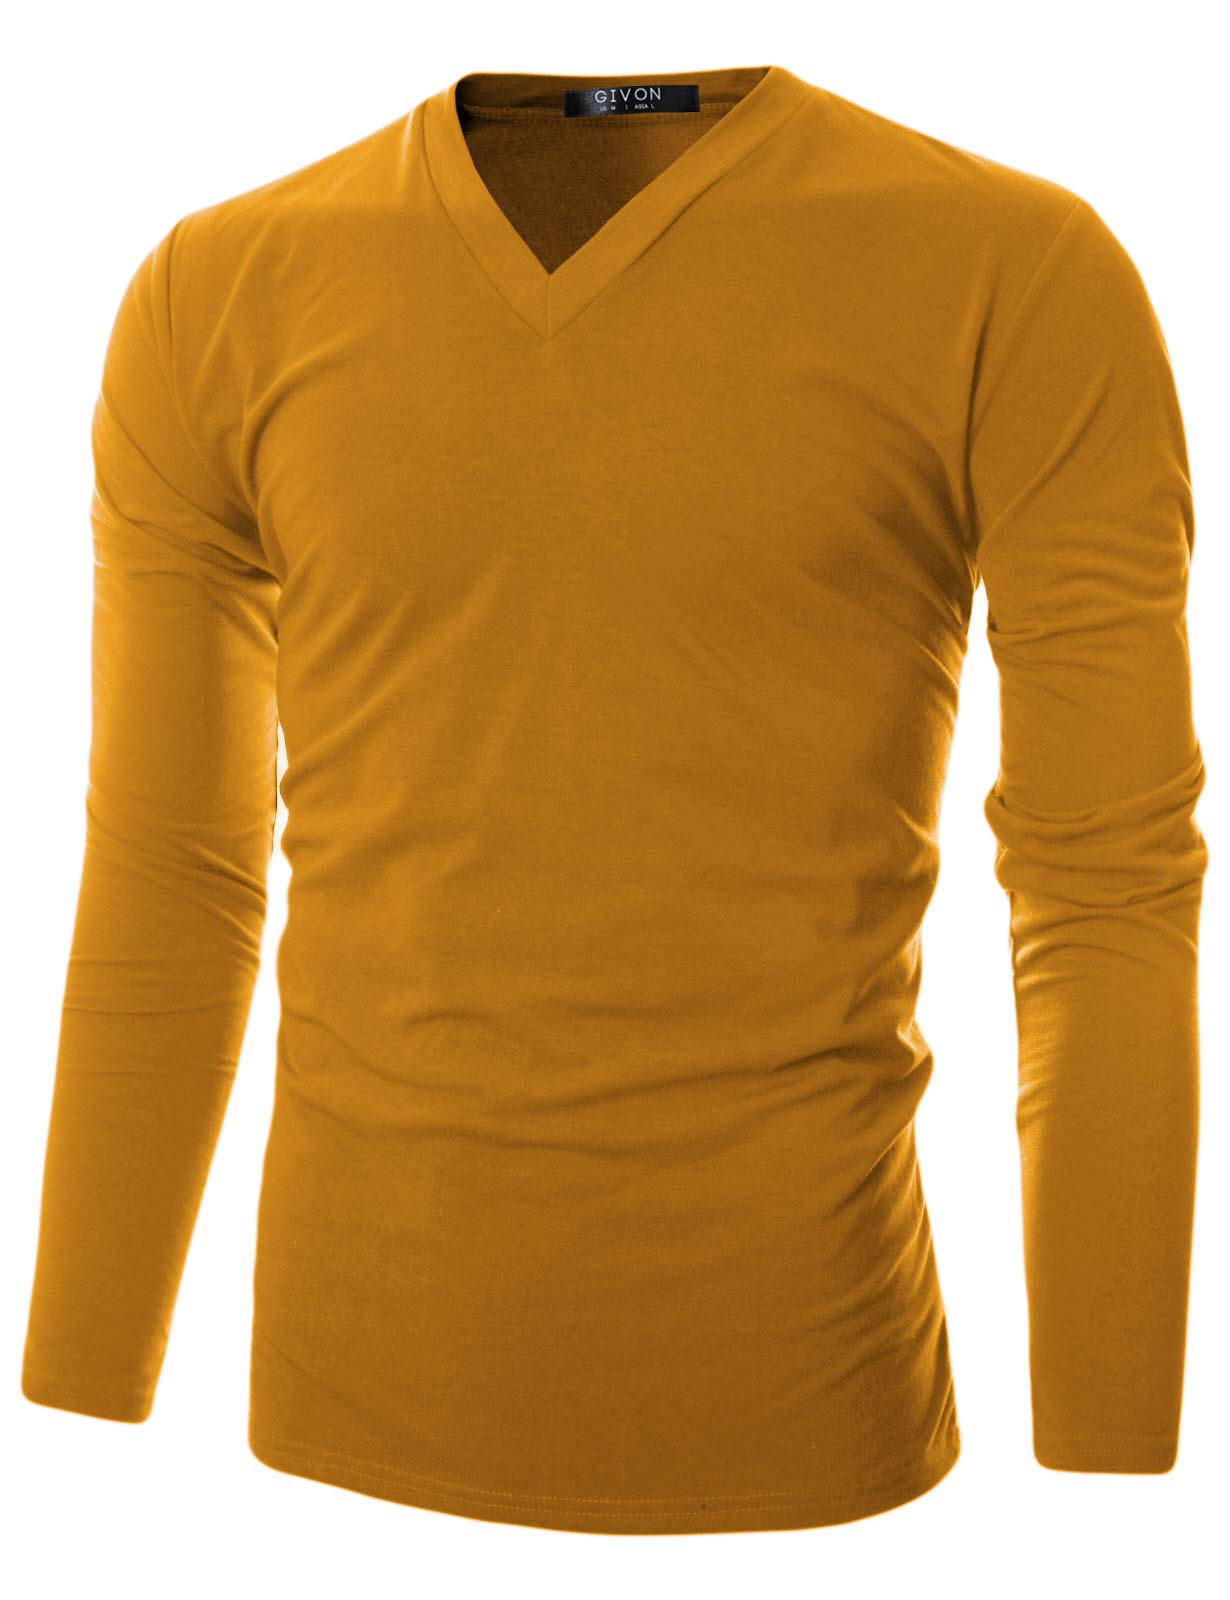 GIVON Mens Slim Fit Soft Cotton Long Sleeve Lightweight Thermal V-Neck T-Shirt/DCP043-MUSTARD-2XL by GIVON